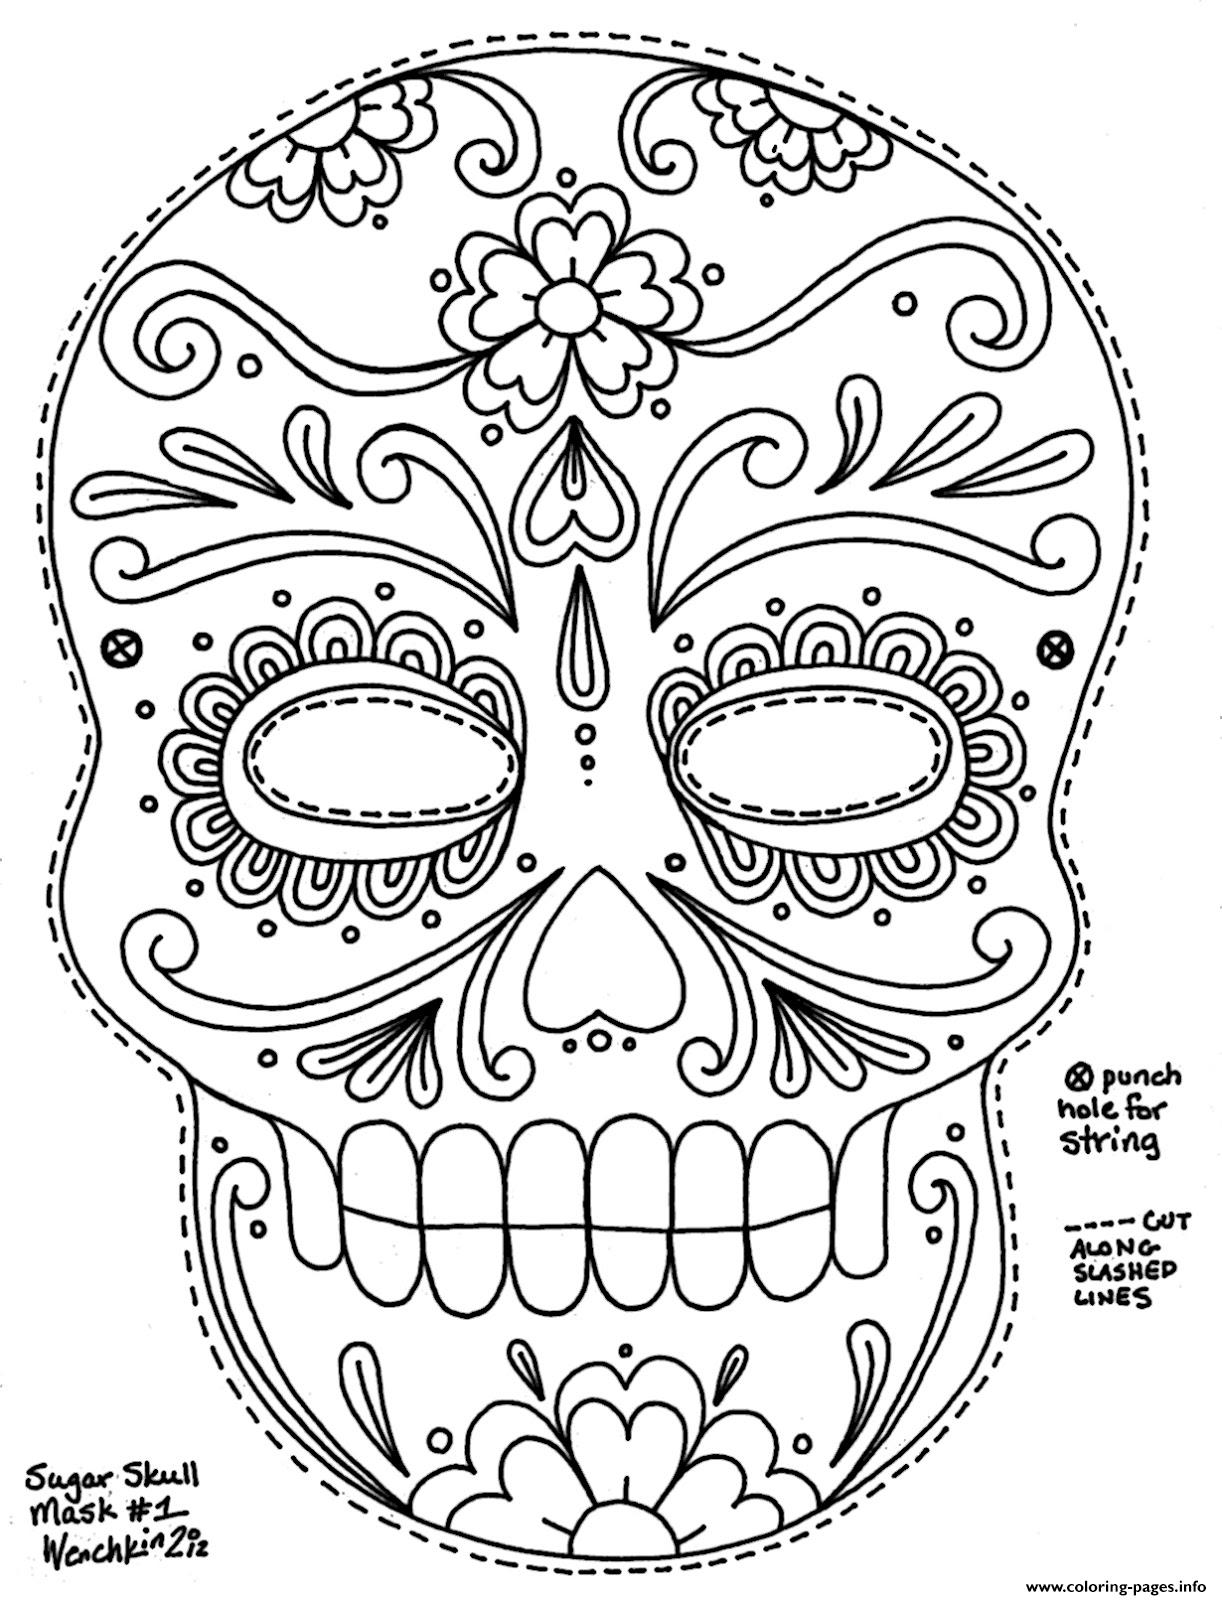 coloring pages for adults hd simple sugar skull hd adult big size coloring pages printable for coloring hd adults pages